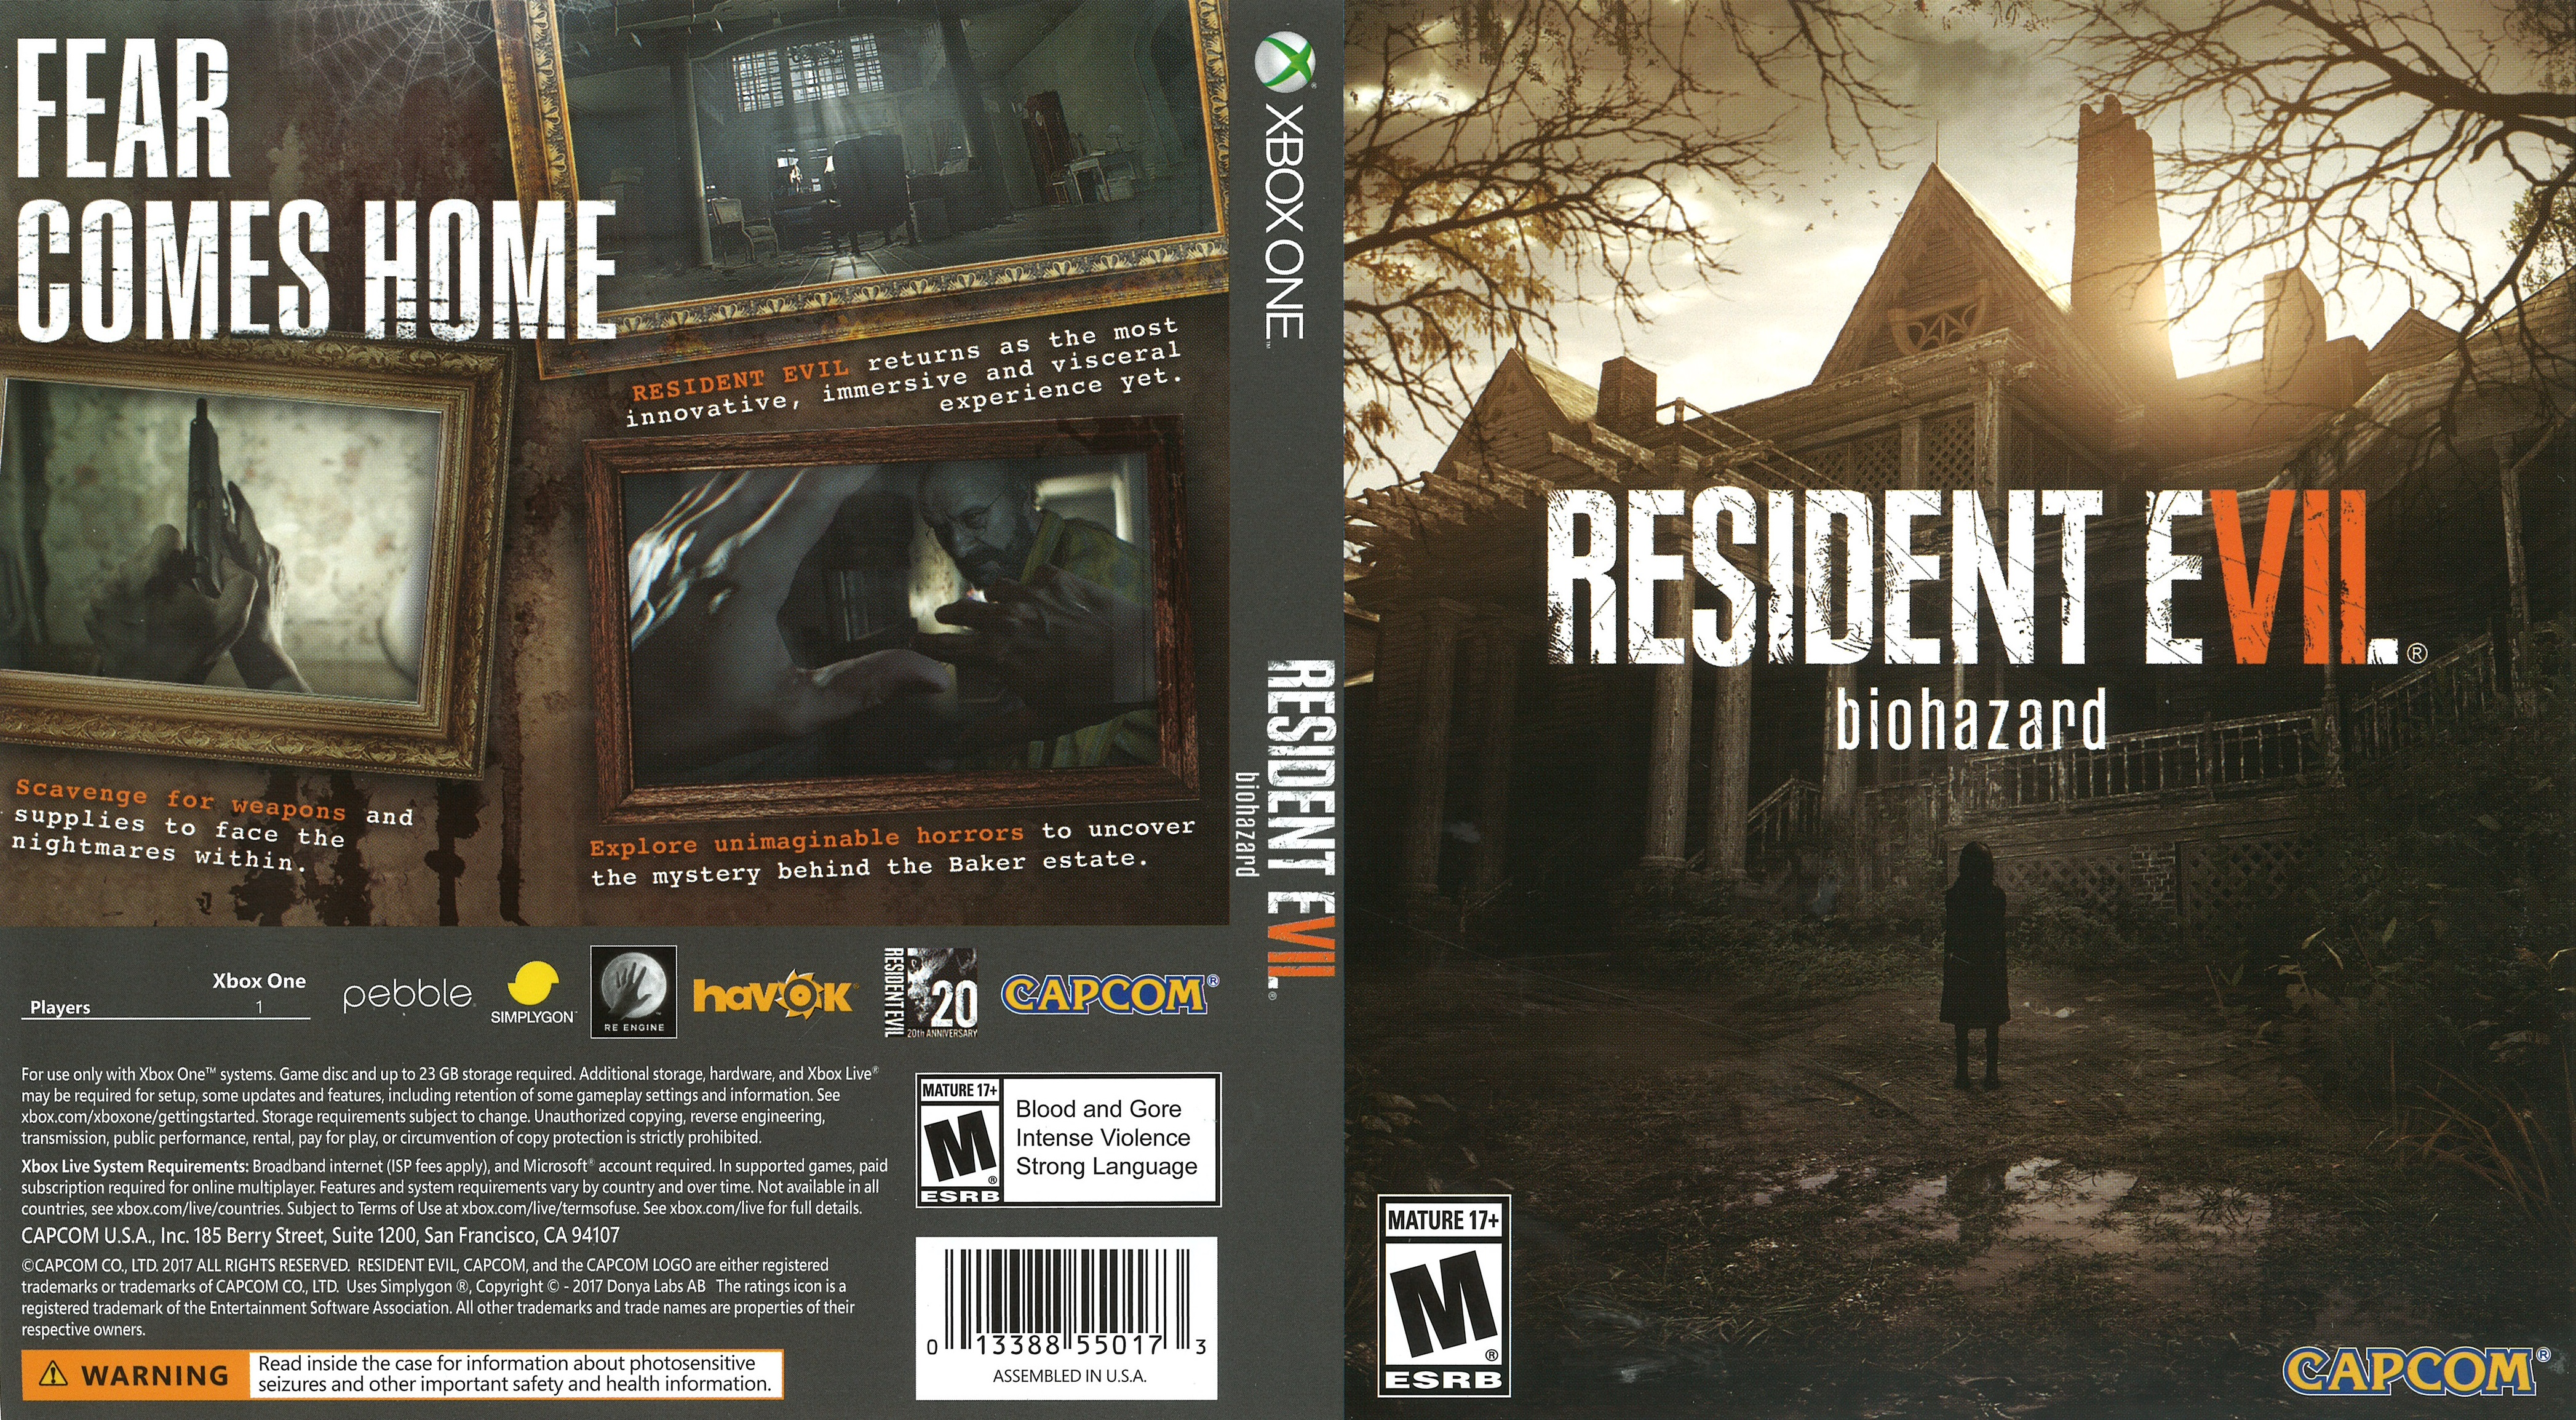 Resident Evil 7 Biohazard 2017 Xbox One Cover Dvd Covers And